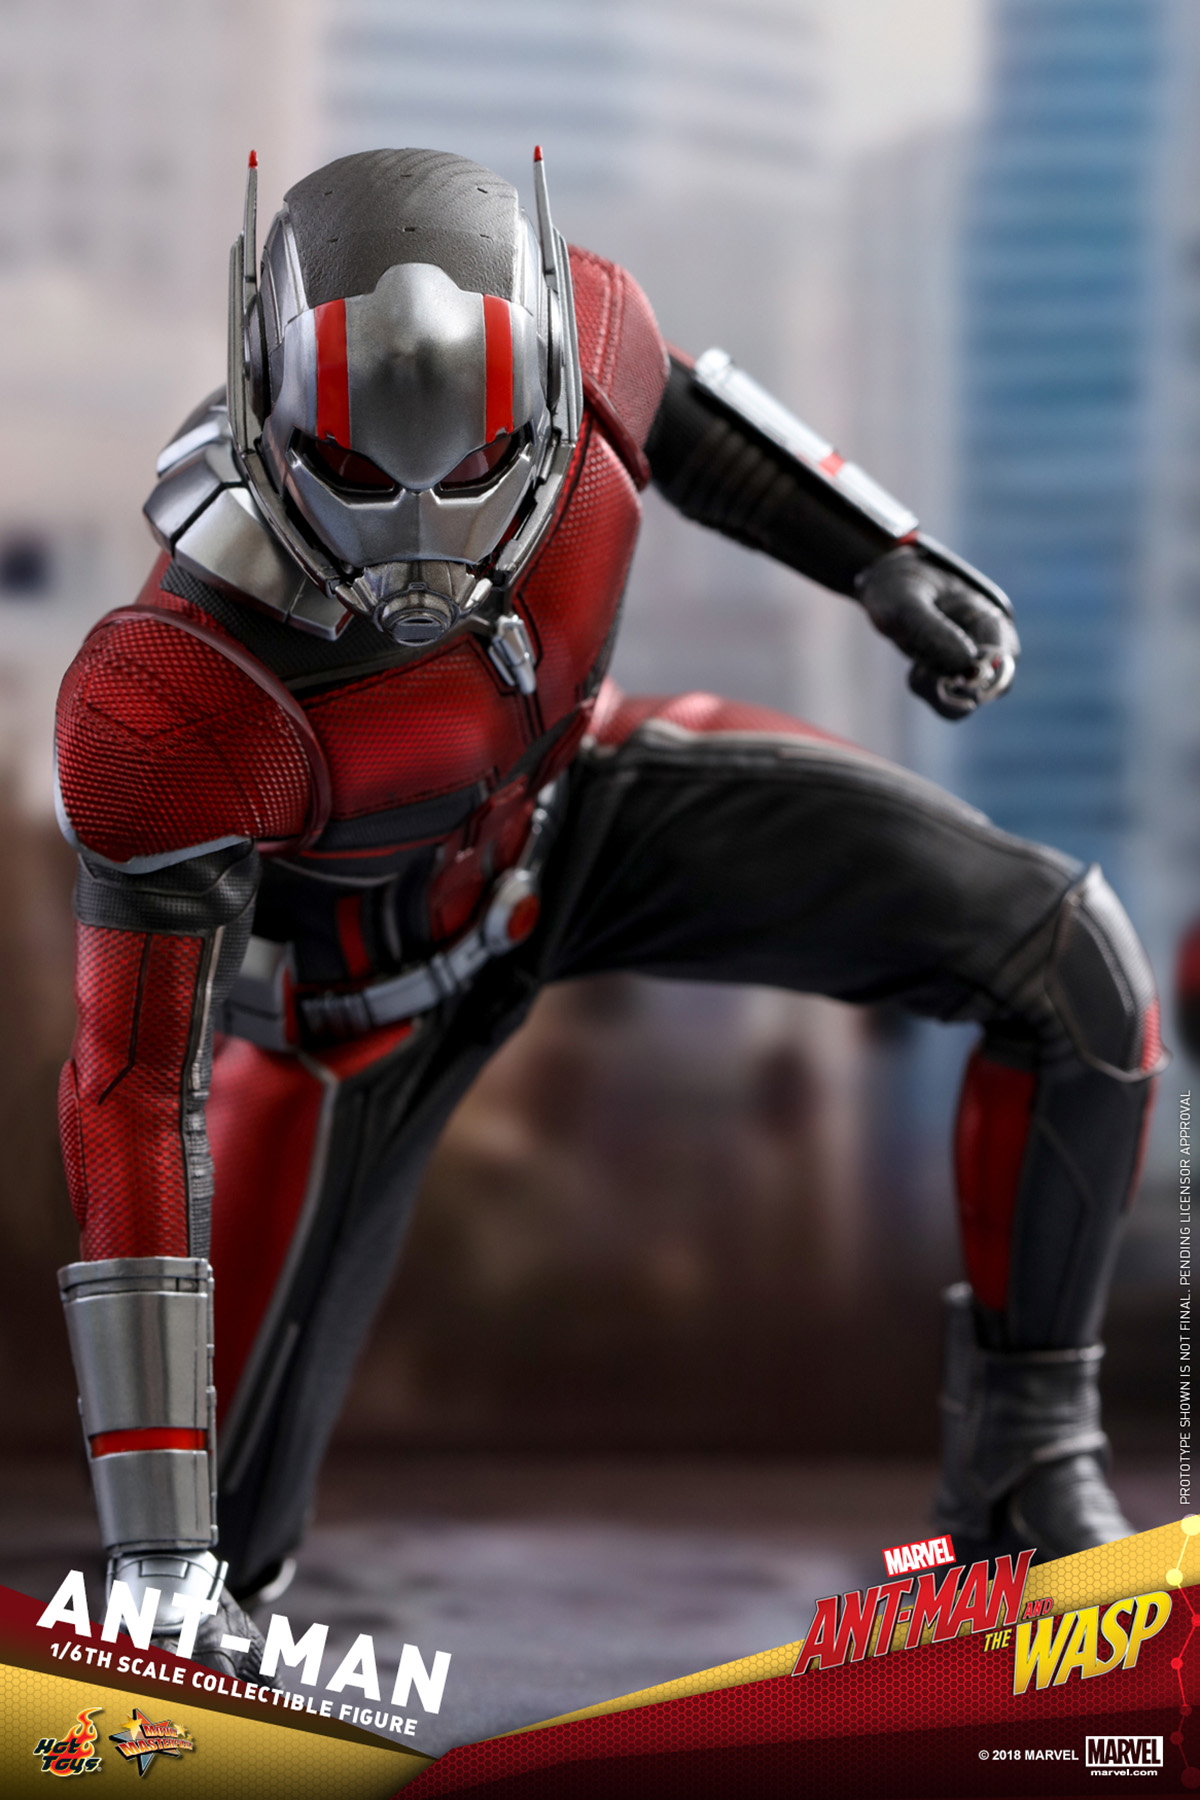 hot-toys-ant-man-and-the-wasp-ant-man-collectible-figure_pr1